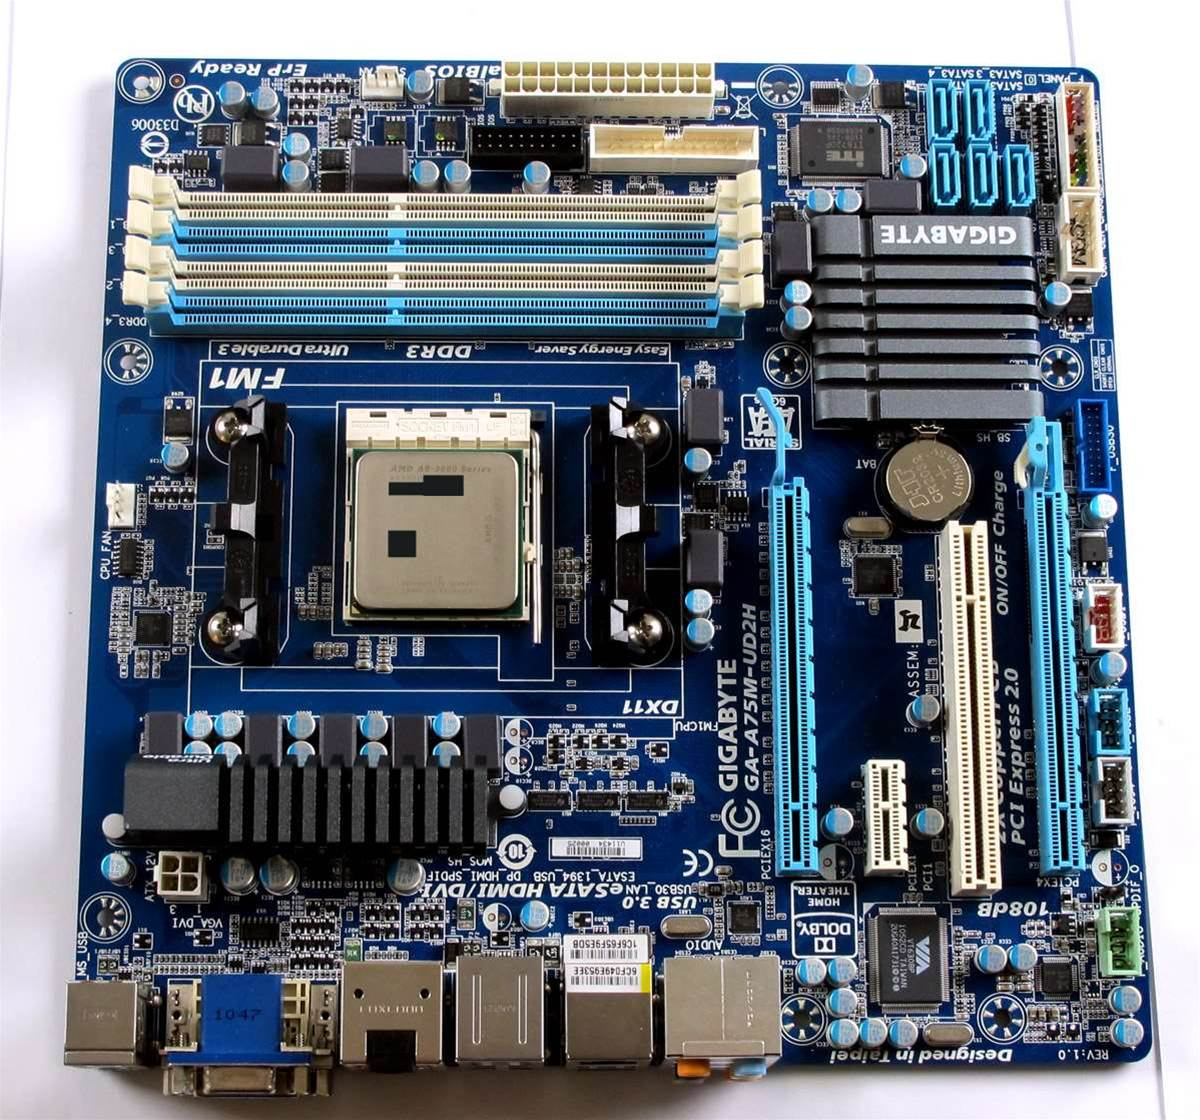 Gigabyte's A75M-UD2H is the kind of mainstream motherboard that the A series APU will be perfect for, small form factor and enough expandability to make an excellent media box for example.